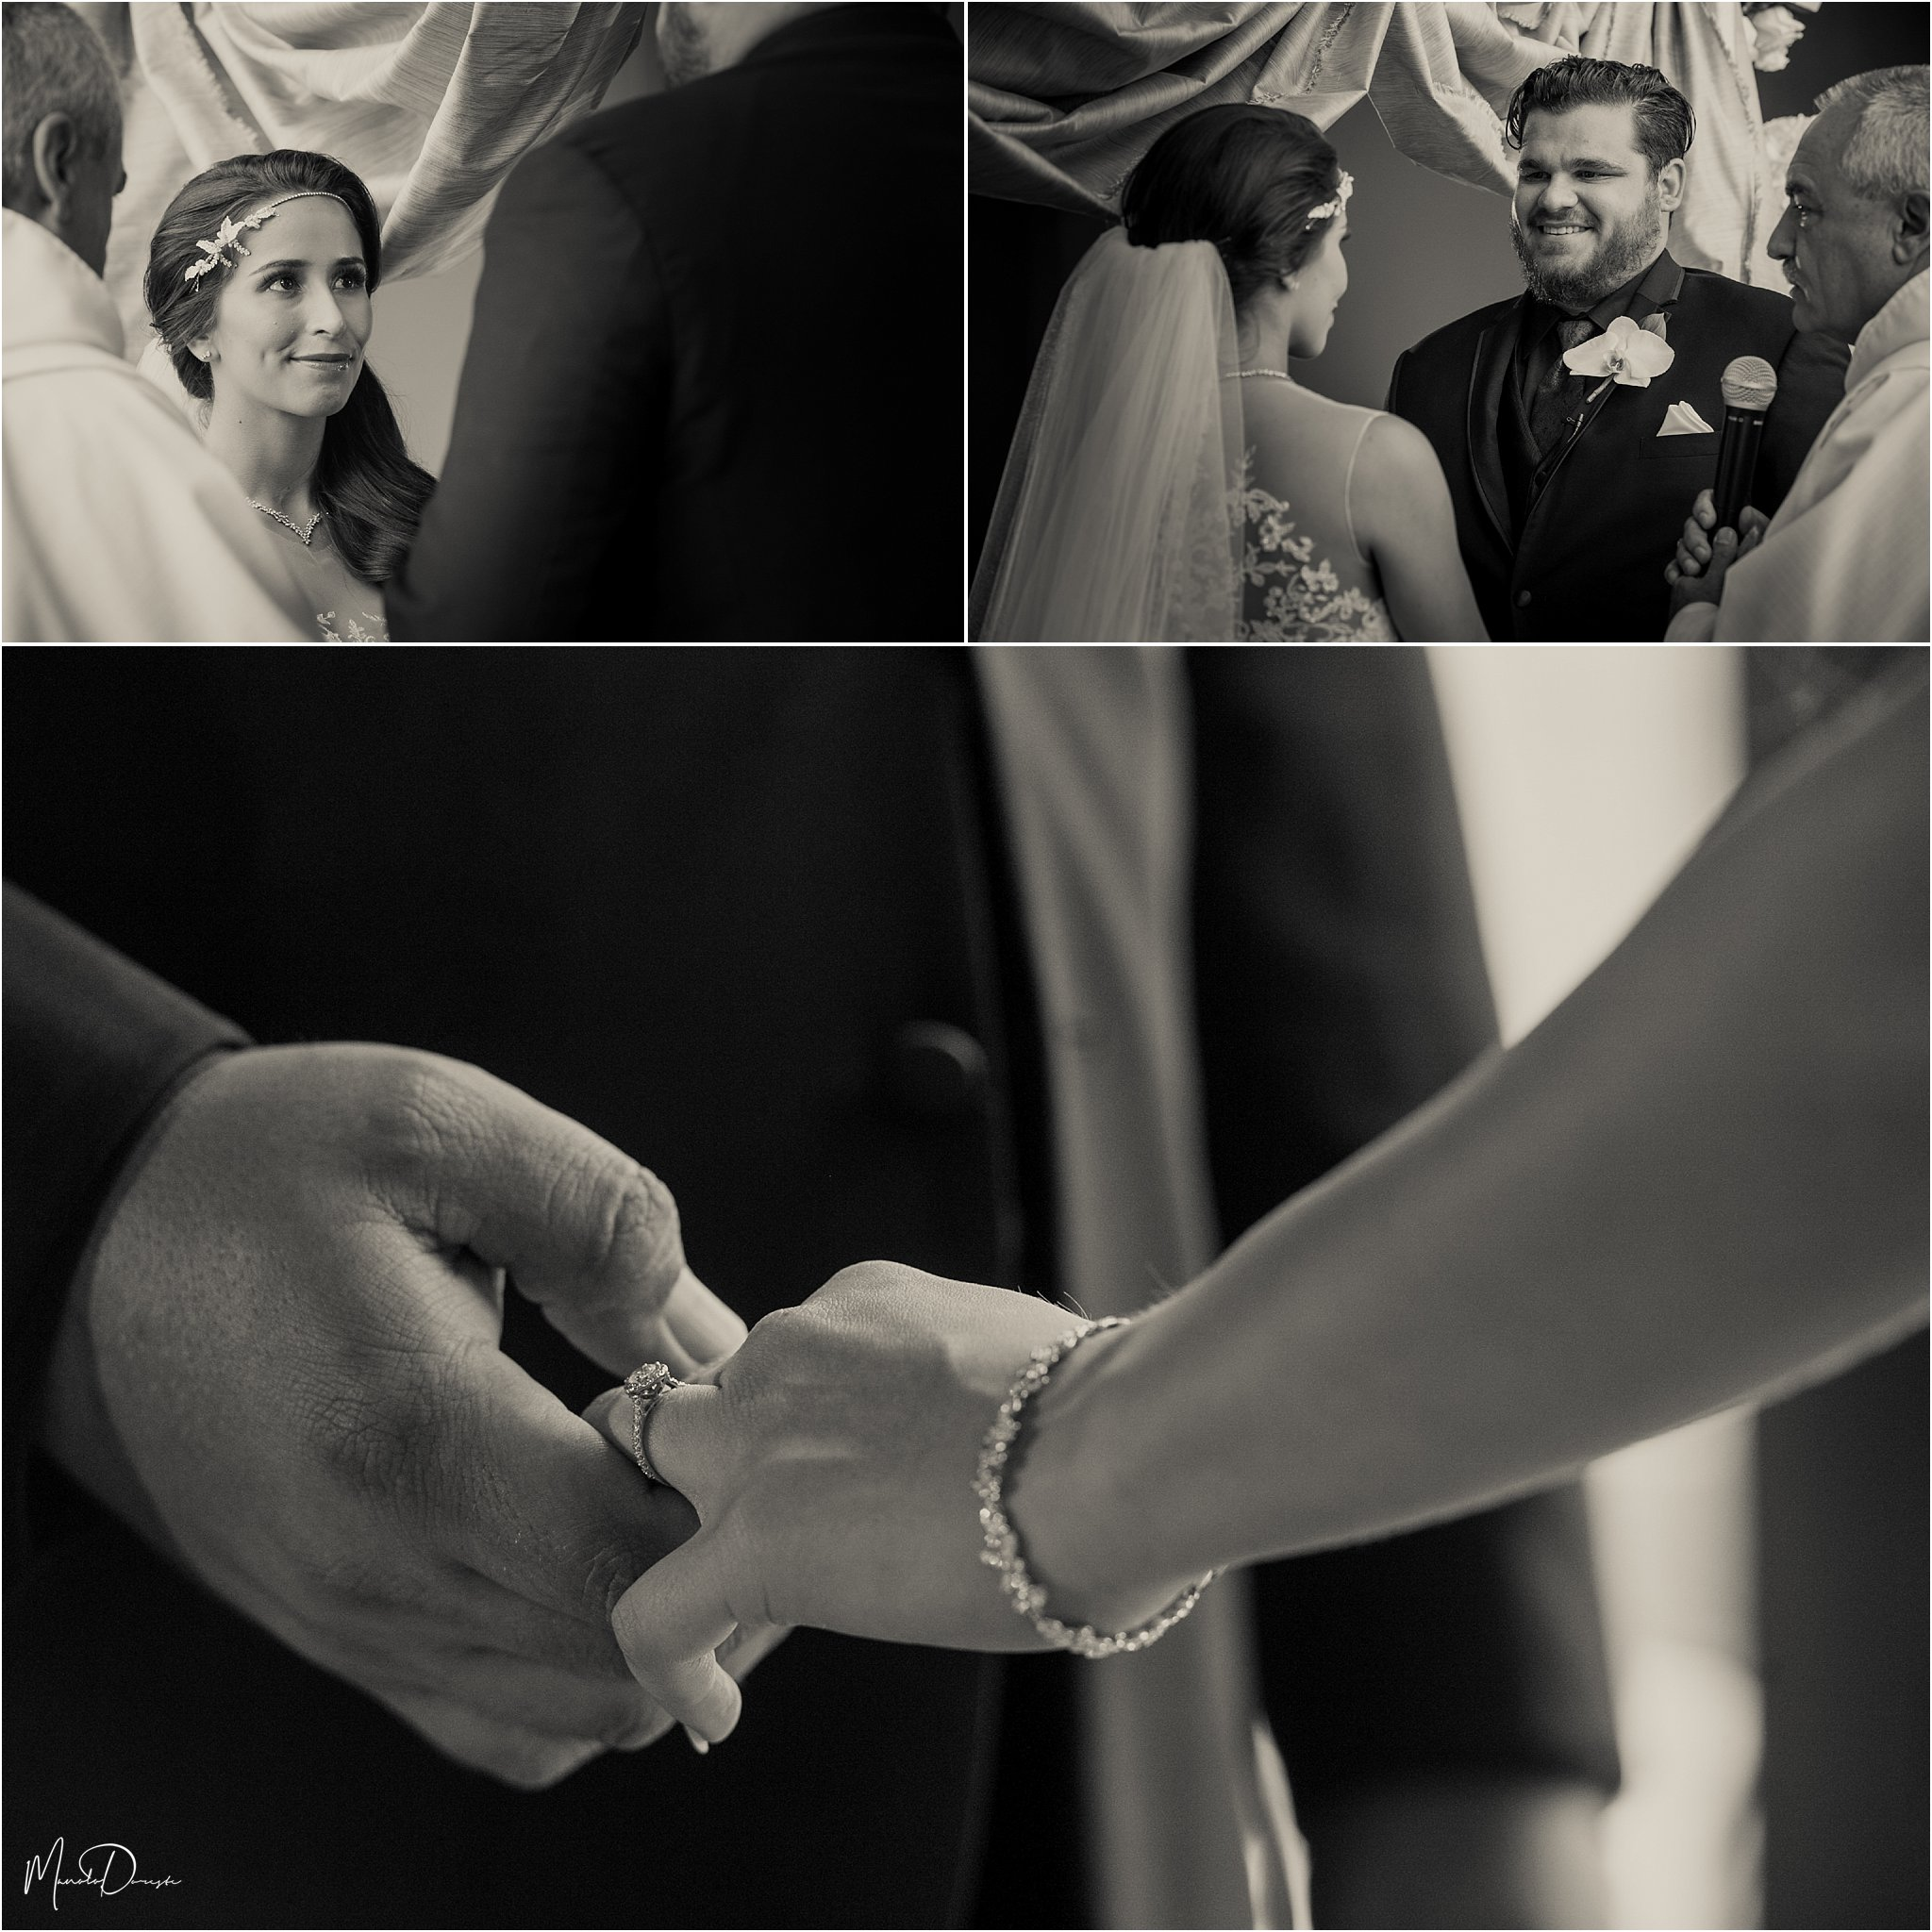 0164_ManoloDoreste_InFocusStudios_Wedding_Family_Photography_Miami_MiamiPhotographer.jpg